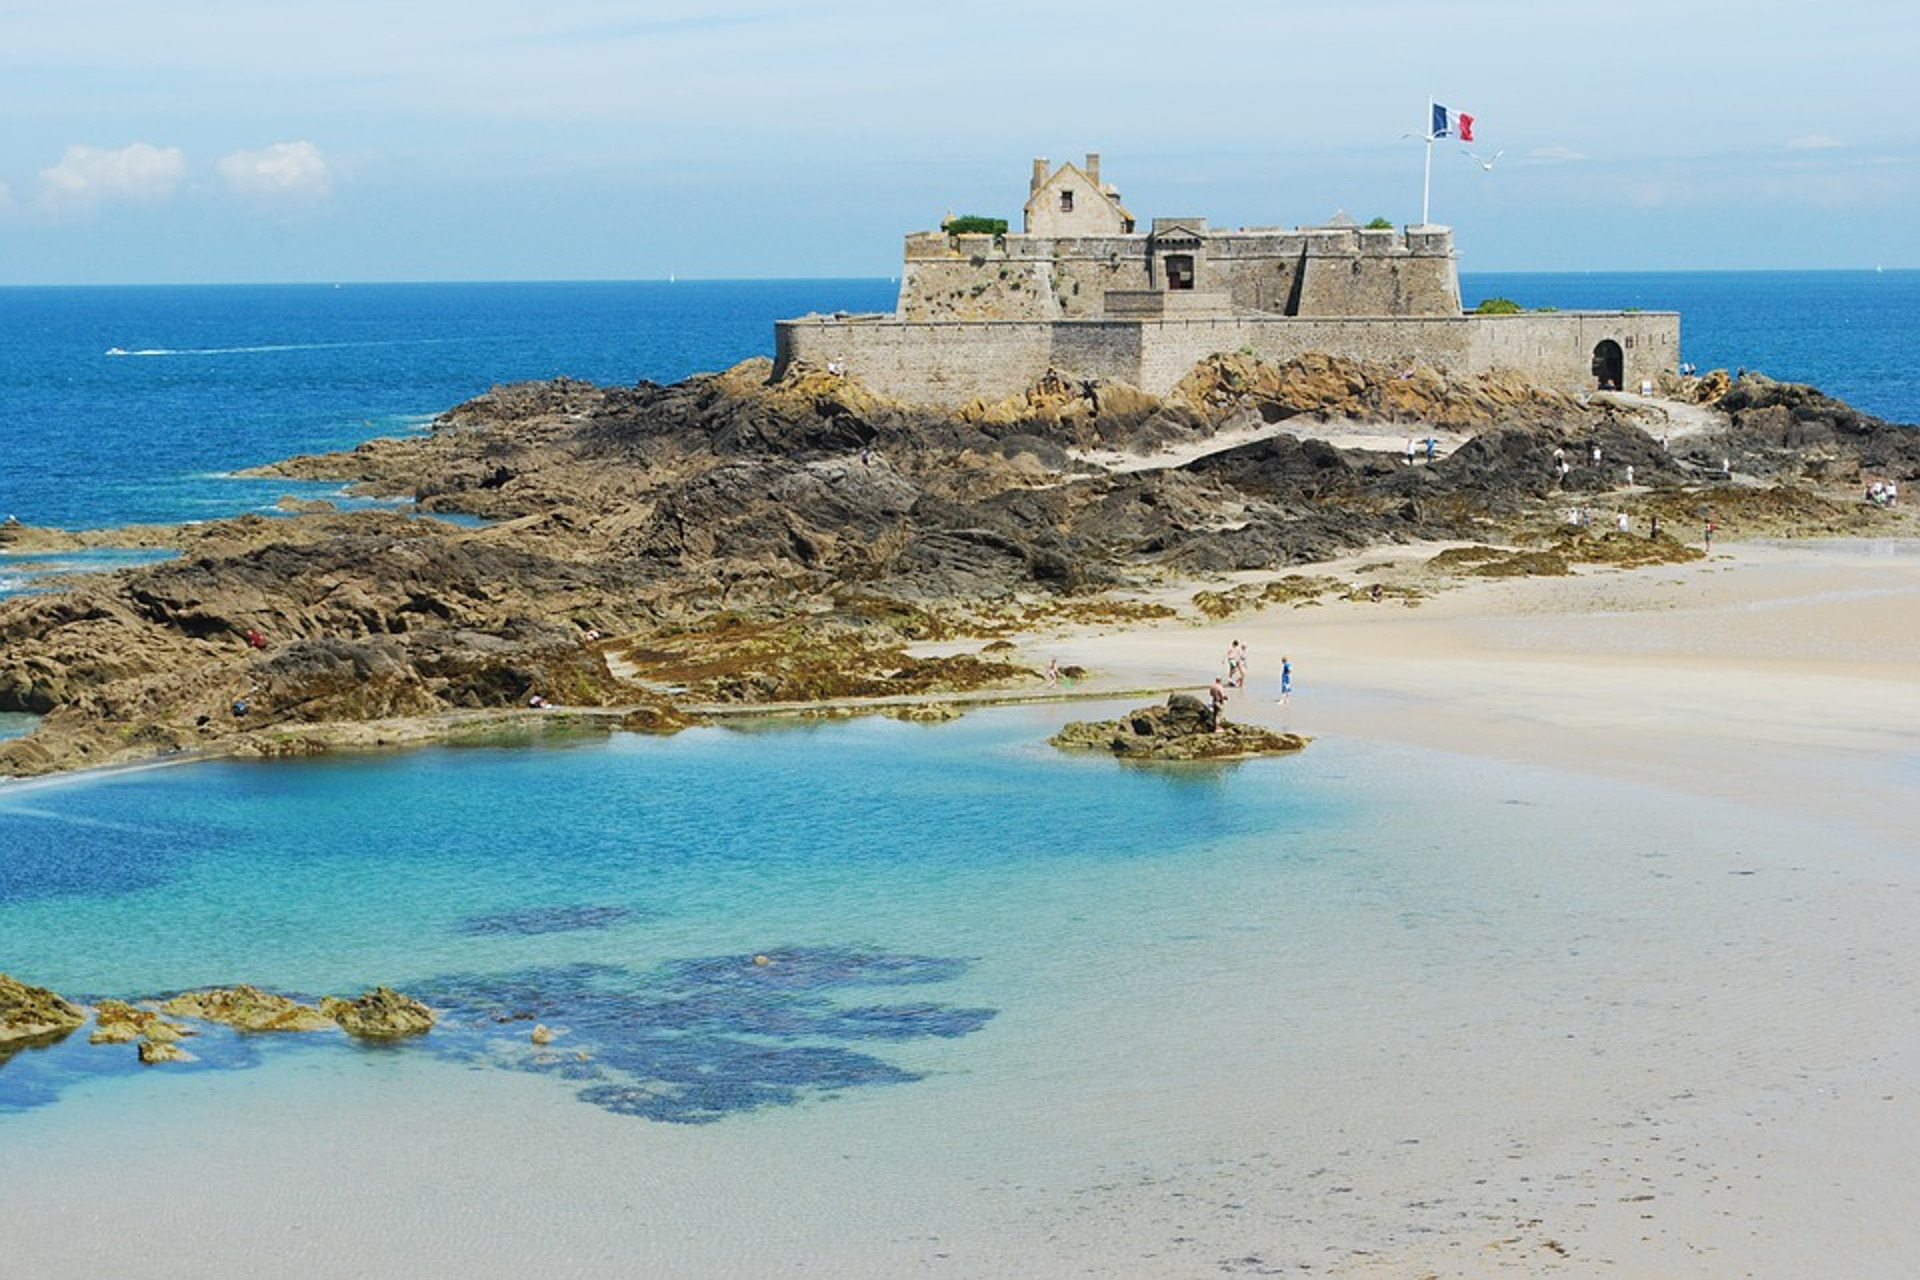 France-brittany-st malo-emerald coast-private walking tour 4